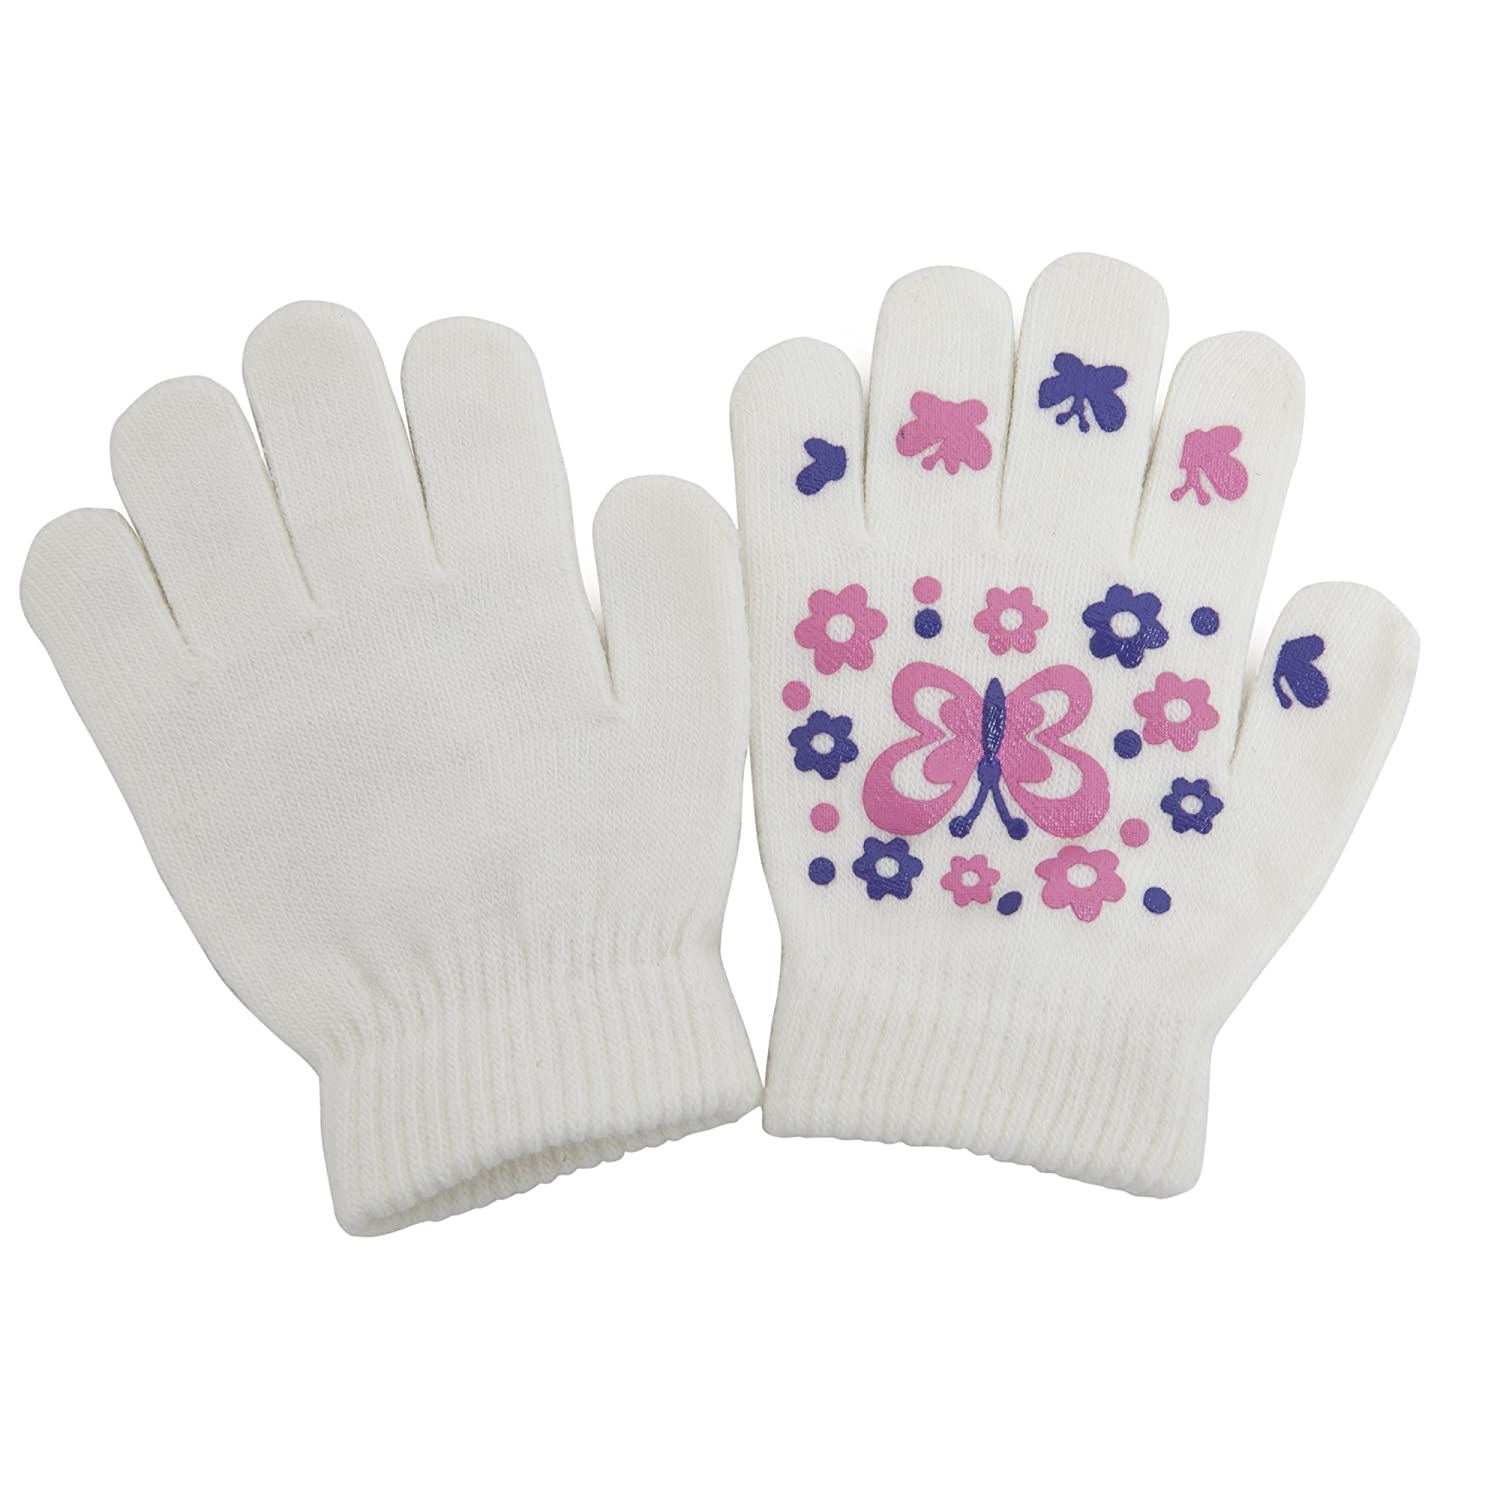 Girls Fun Winter Magic Gloves With Rubber Print (Up to 12 years) (Pink) Universal Textiles UTGL473_1